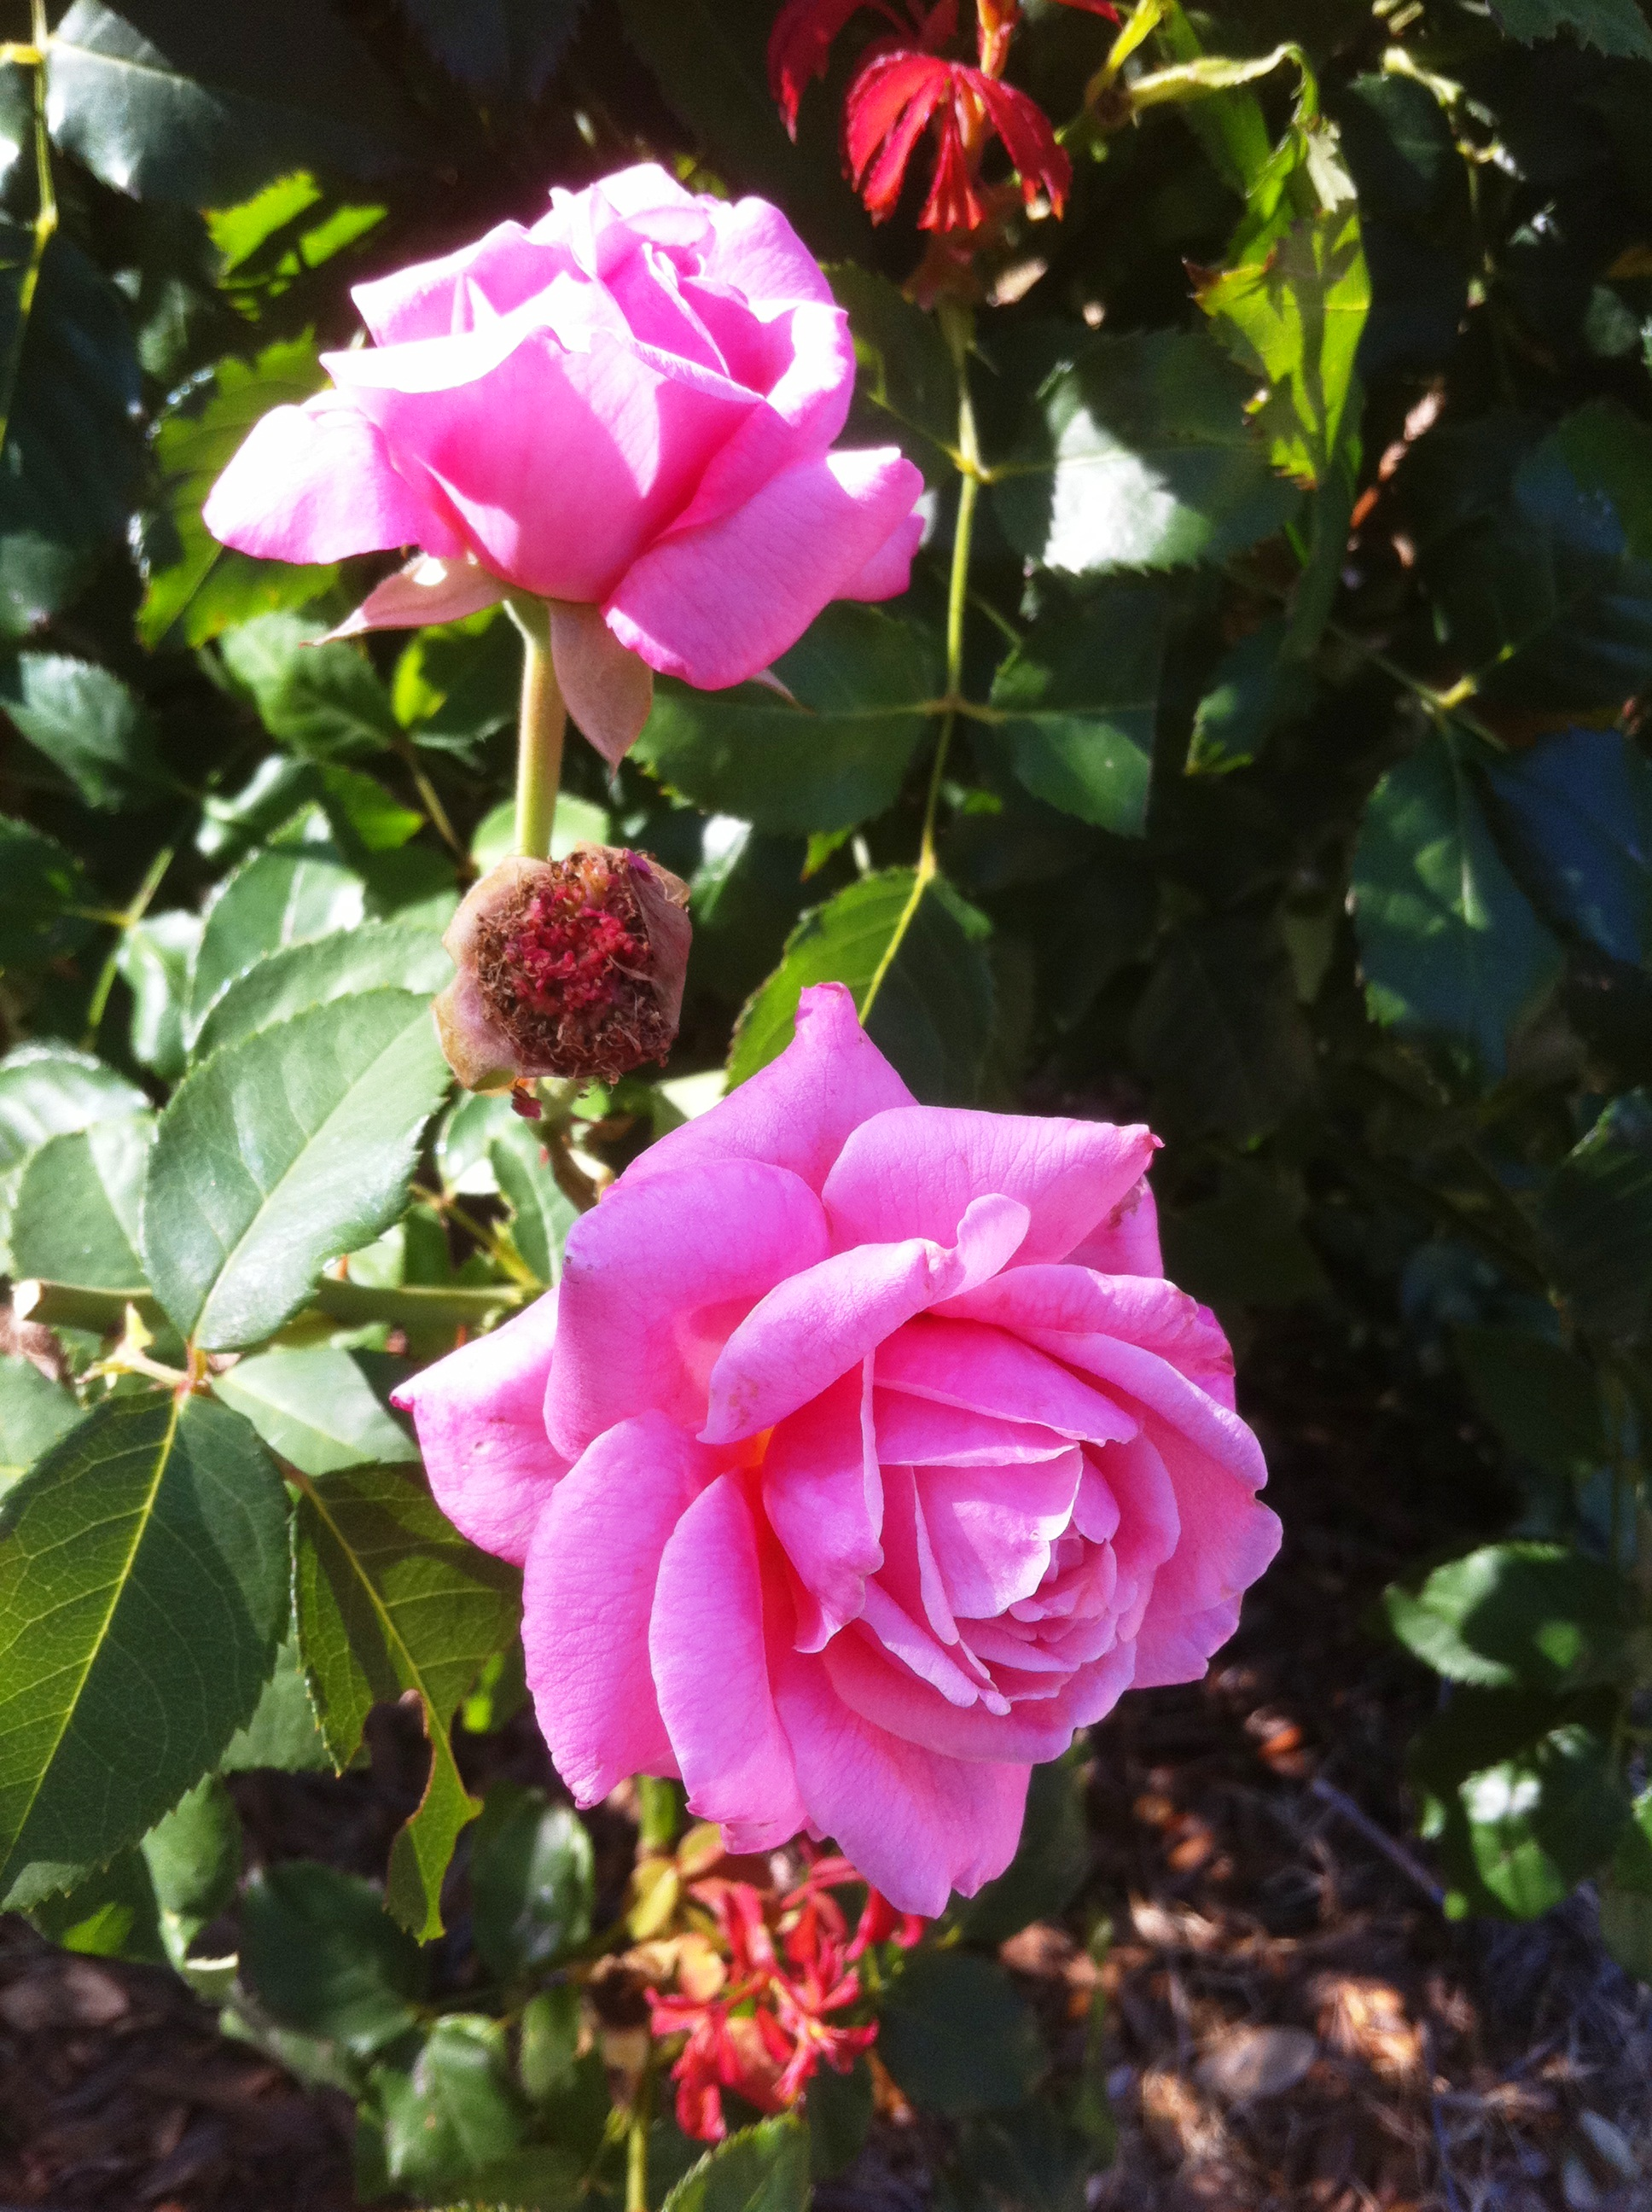 How to take care of roses - Take Care Of Your Roses During Summer